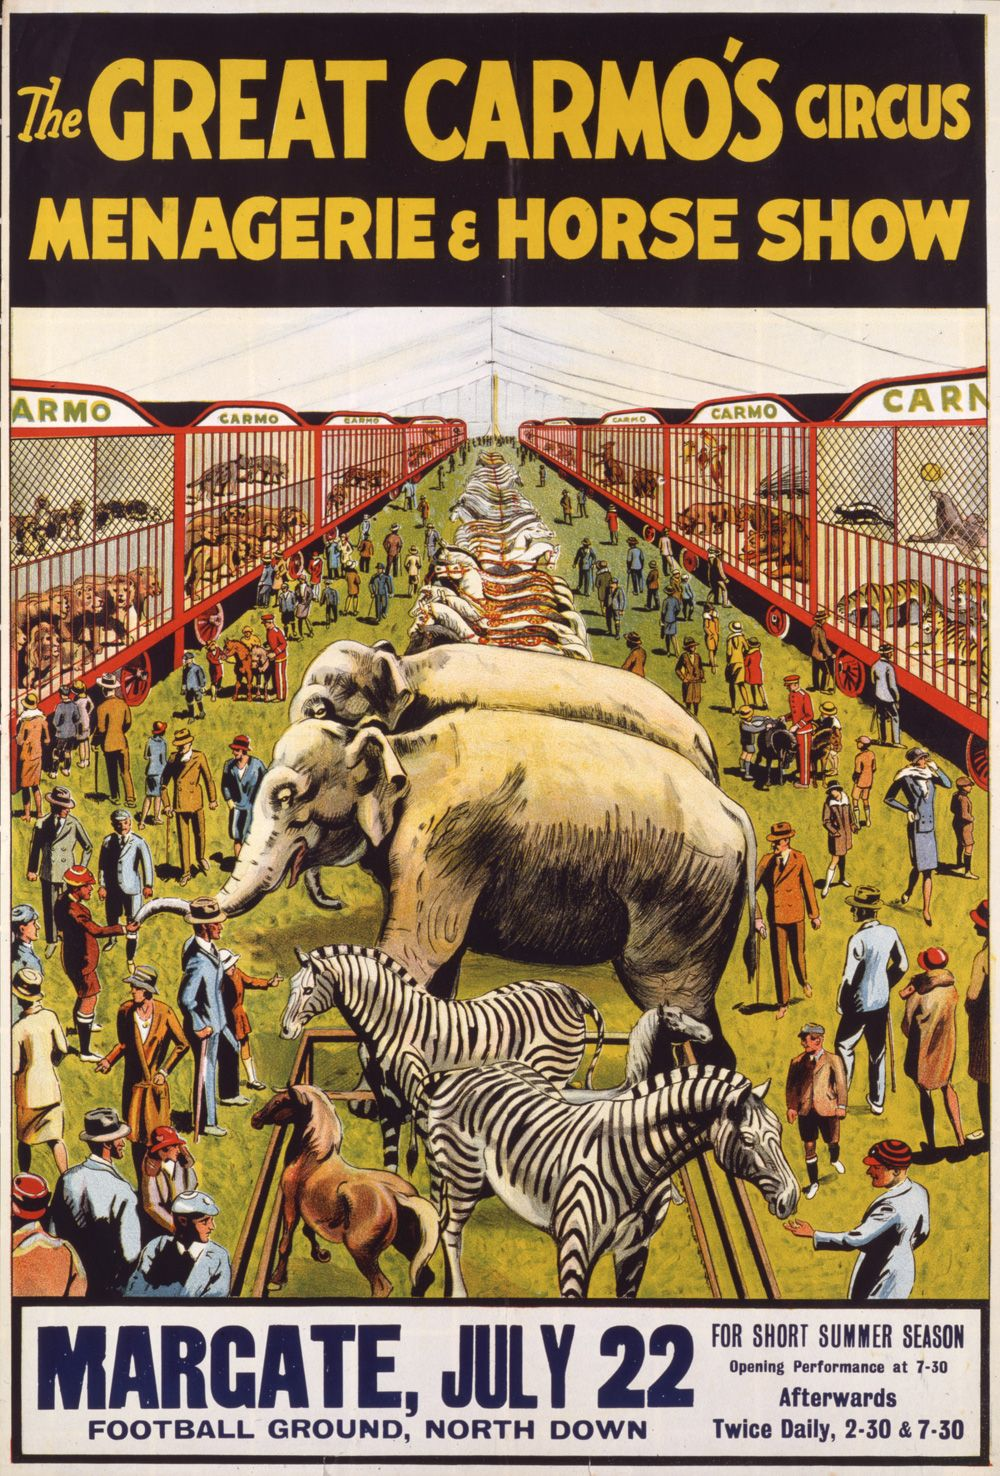 The Great Carmo's Circus Menagerie & Horse Show (V)